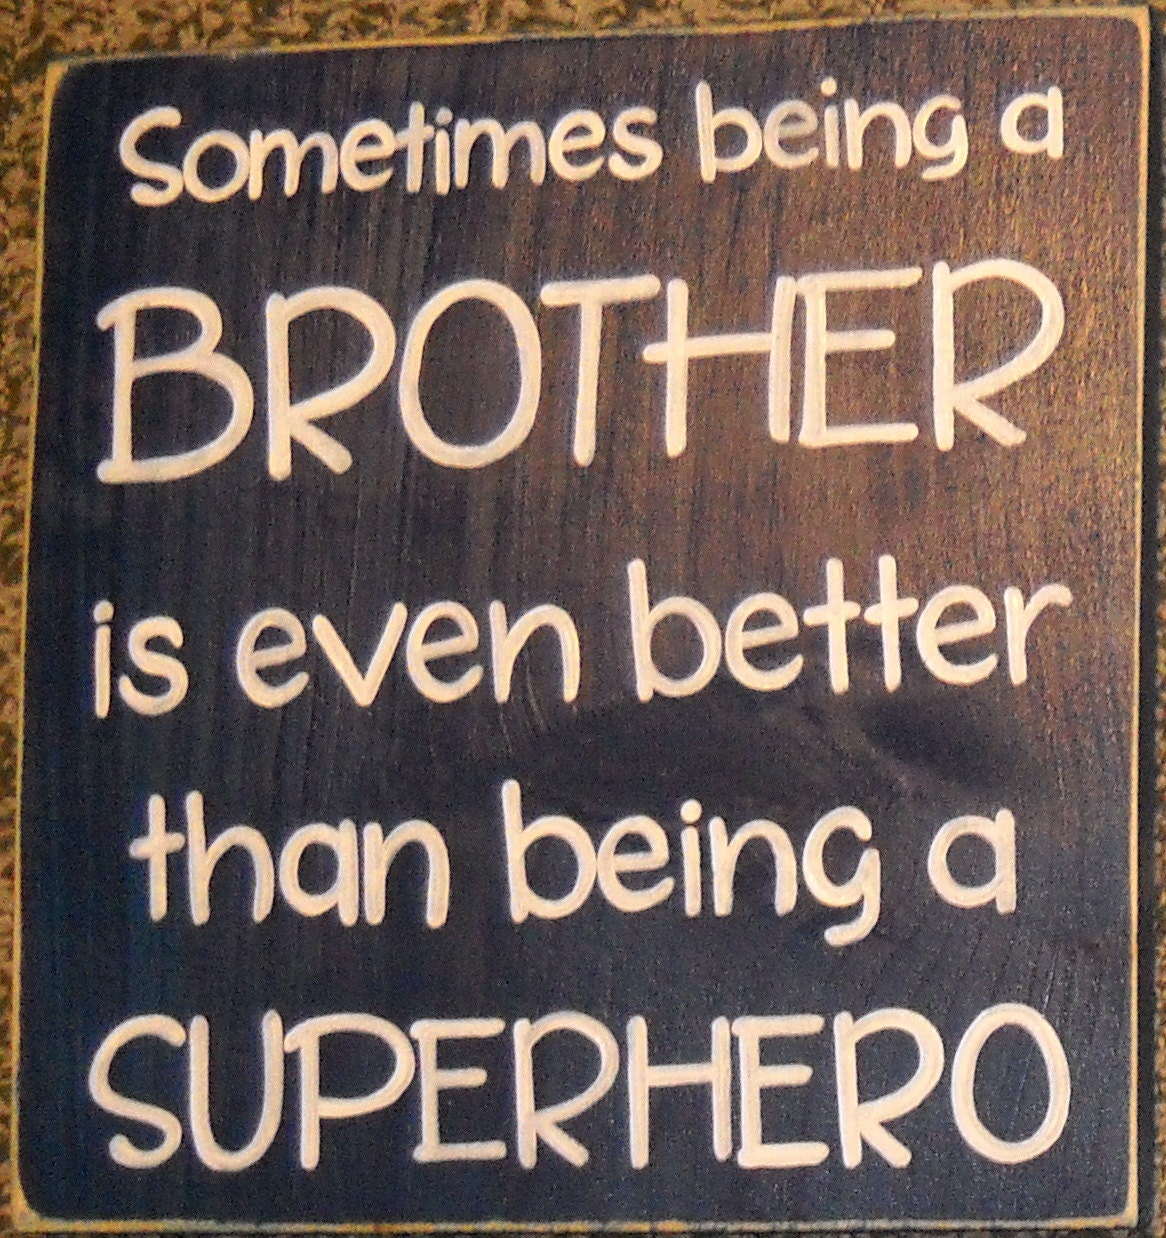 Big Brother Little Sister Quotes. QuotesGram